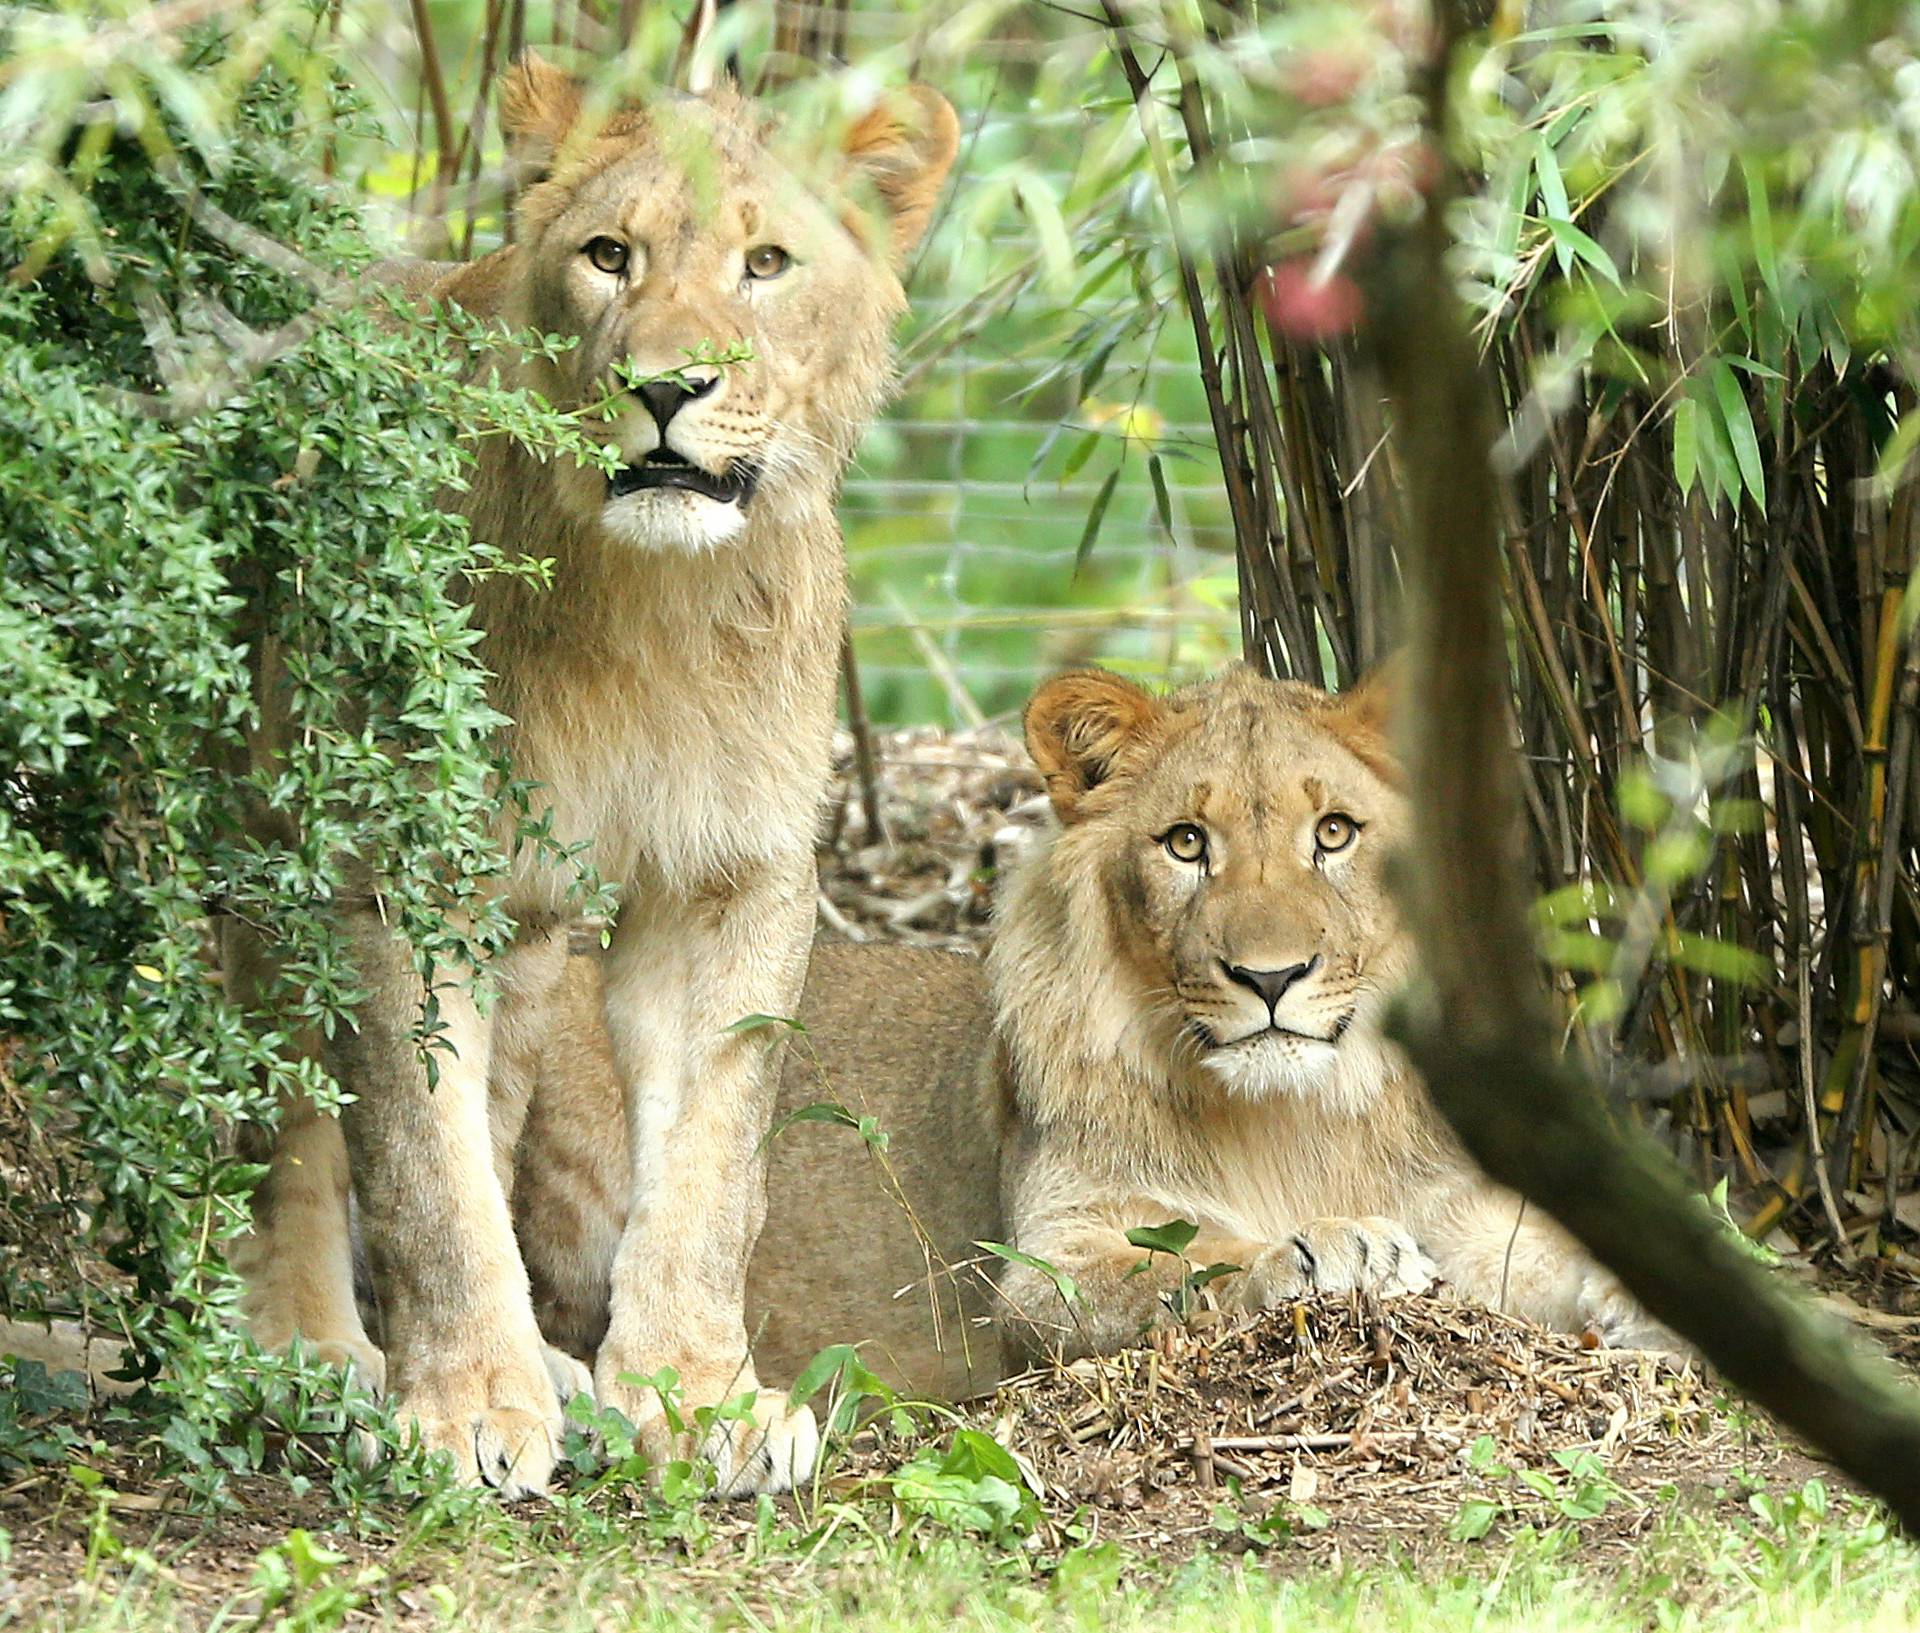 New Lions explore their enclosure at the zoo in Leipzig